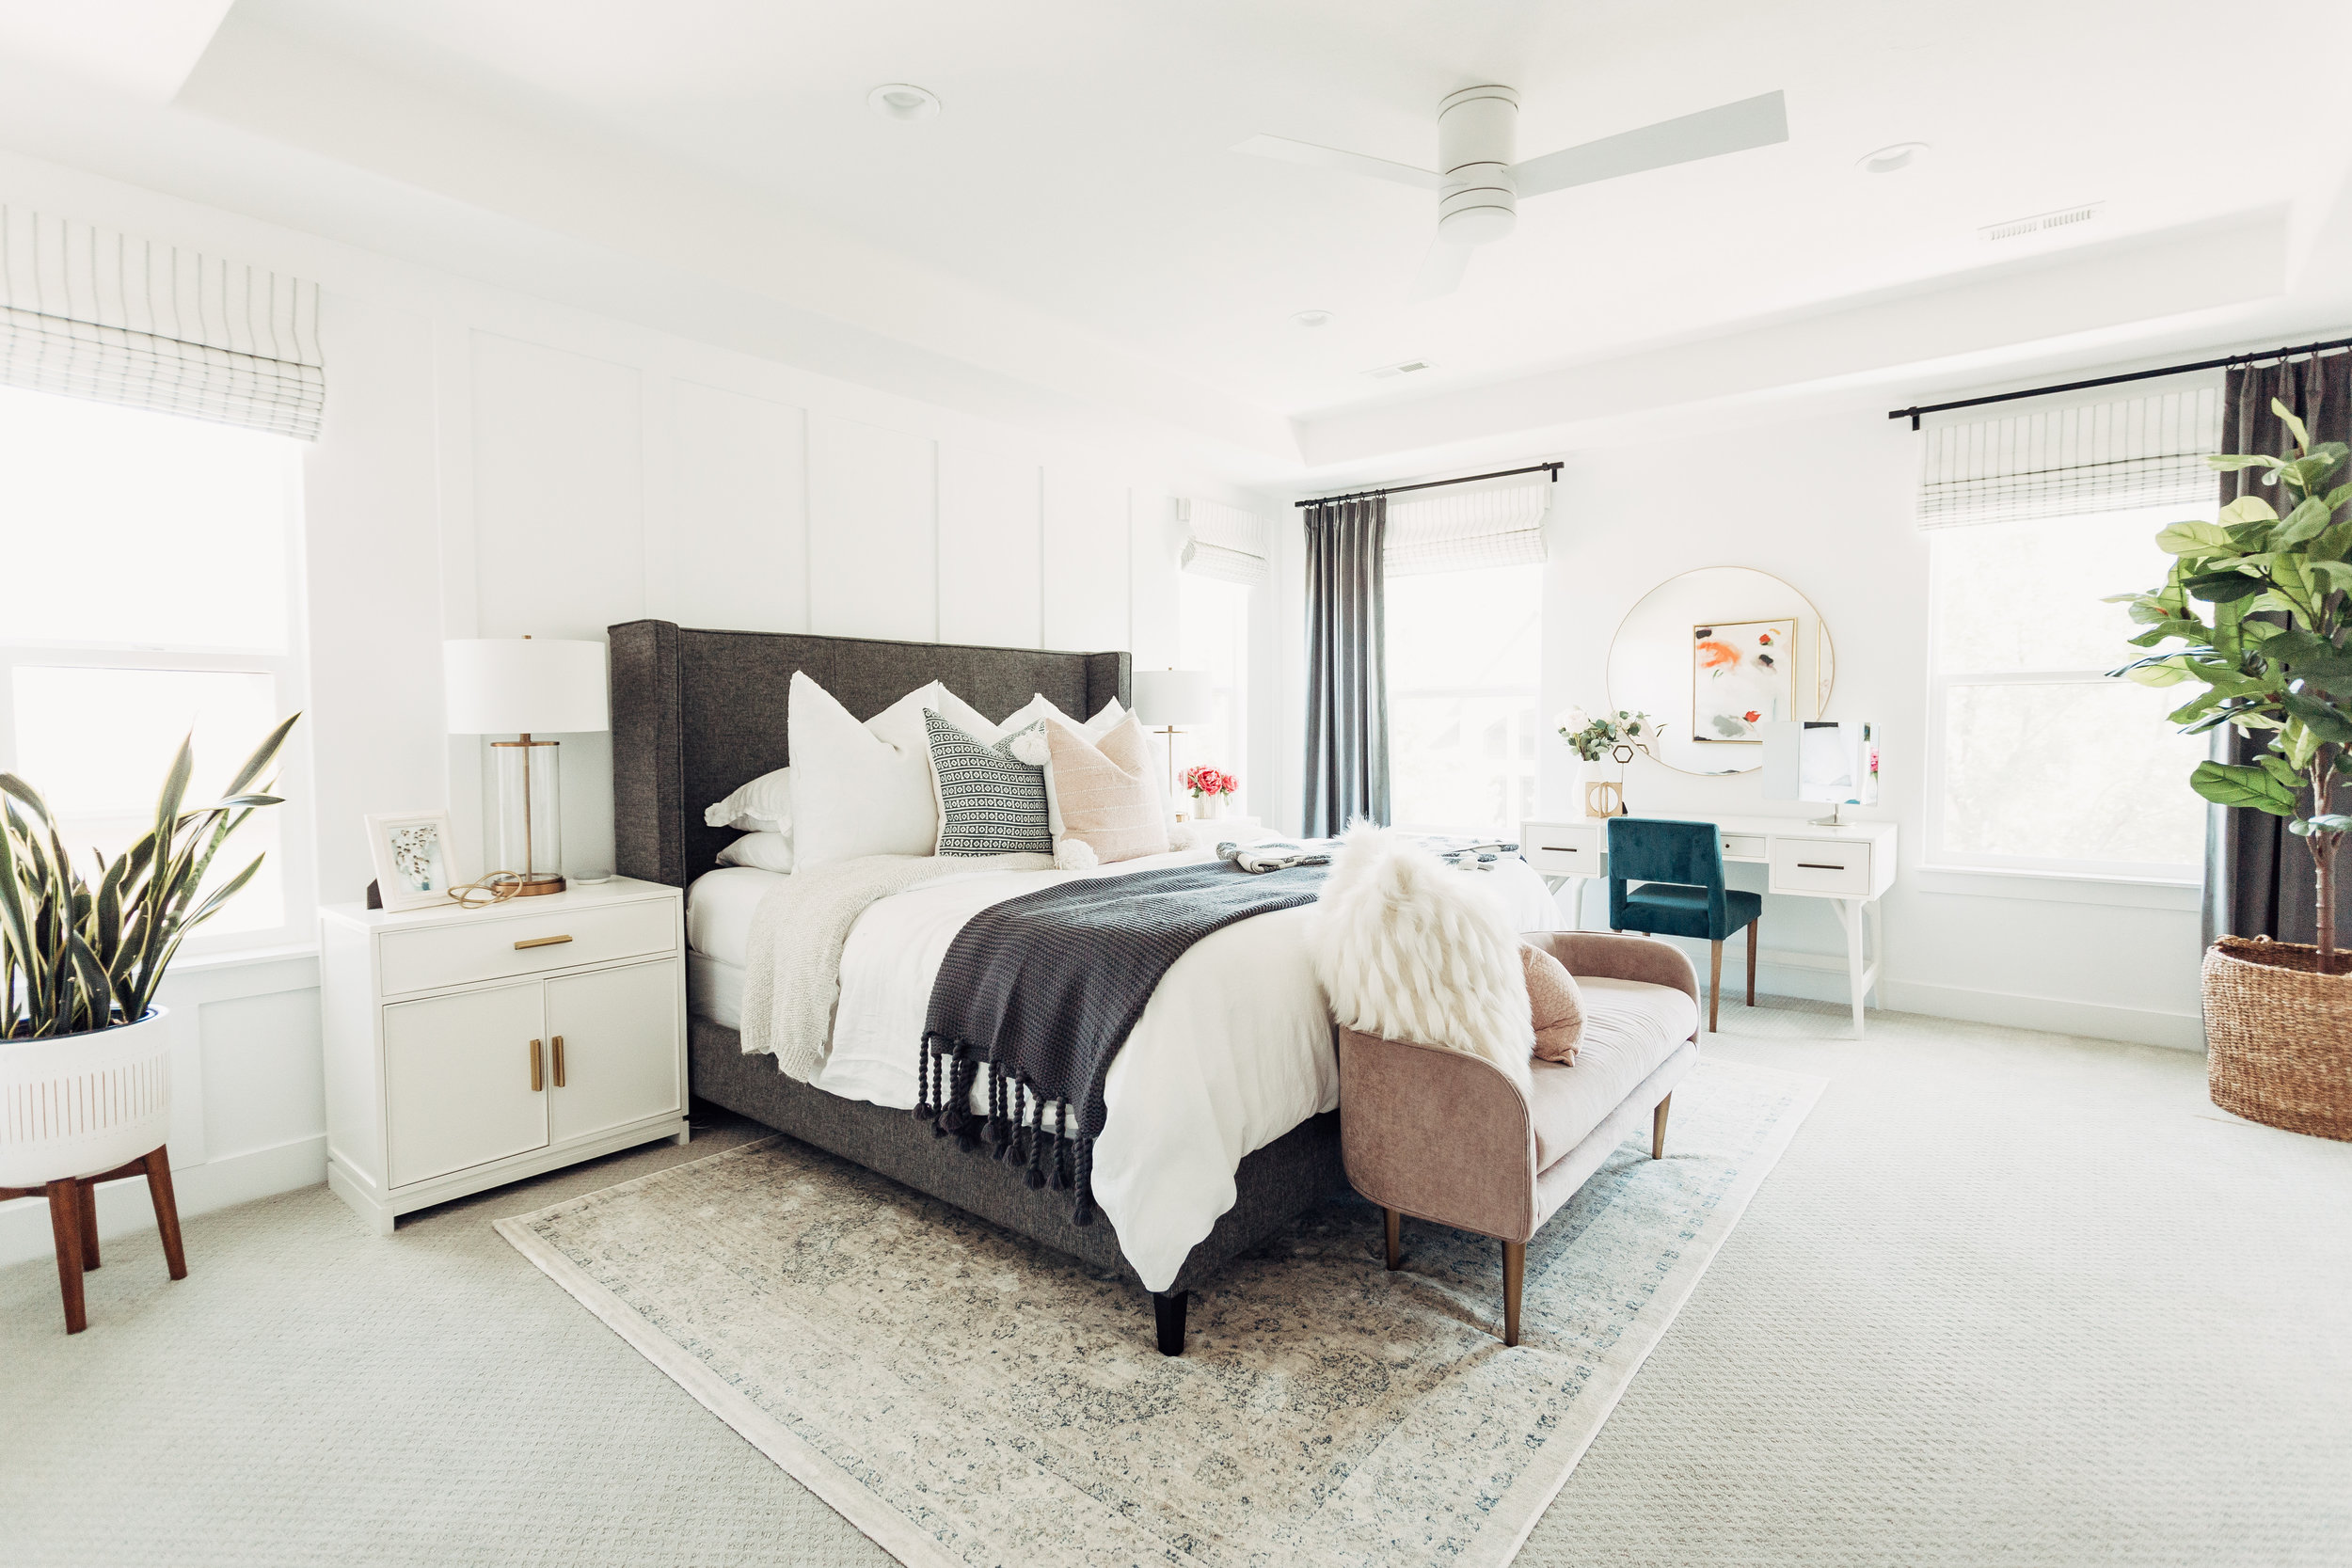 ABBY MASTER BEDROOM REVEAL   A master suite for an amazing #momboss, friend + inspiration!